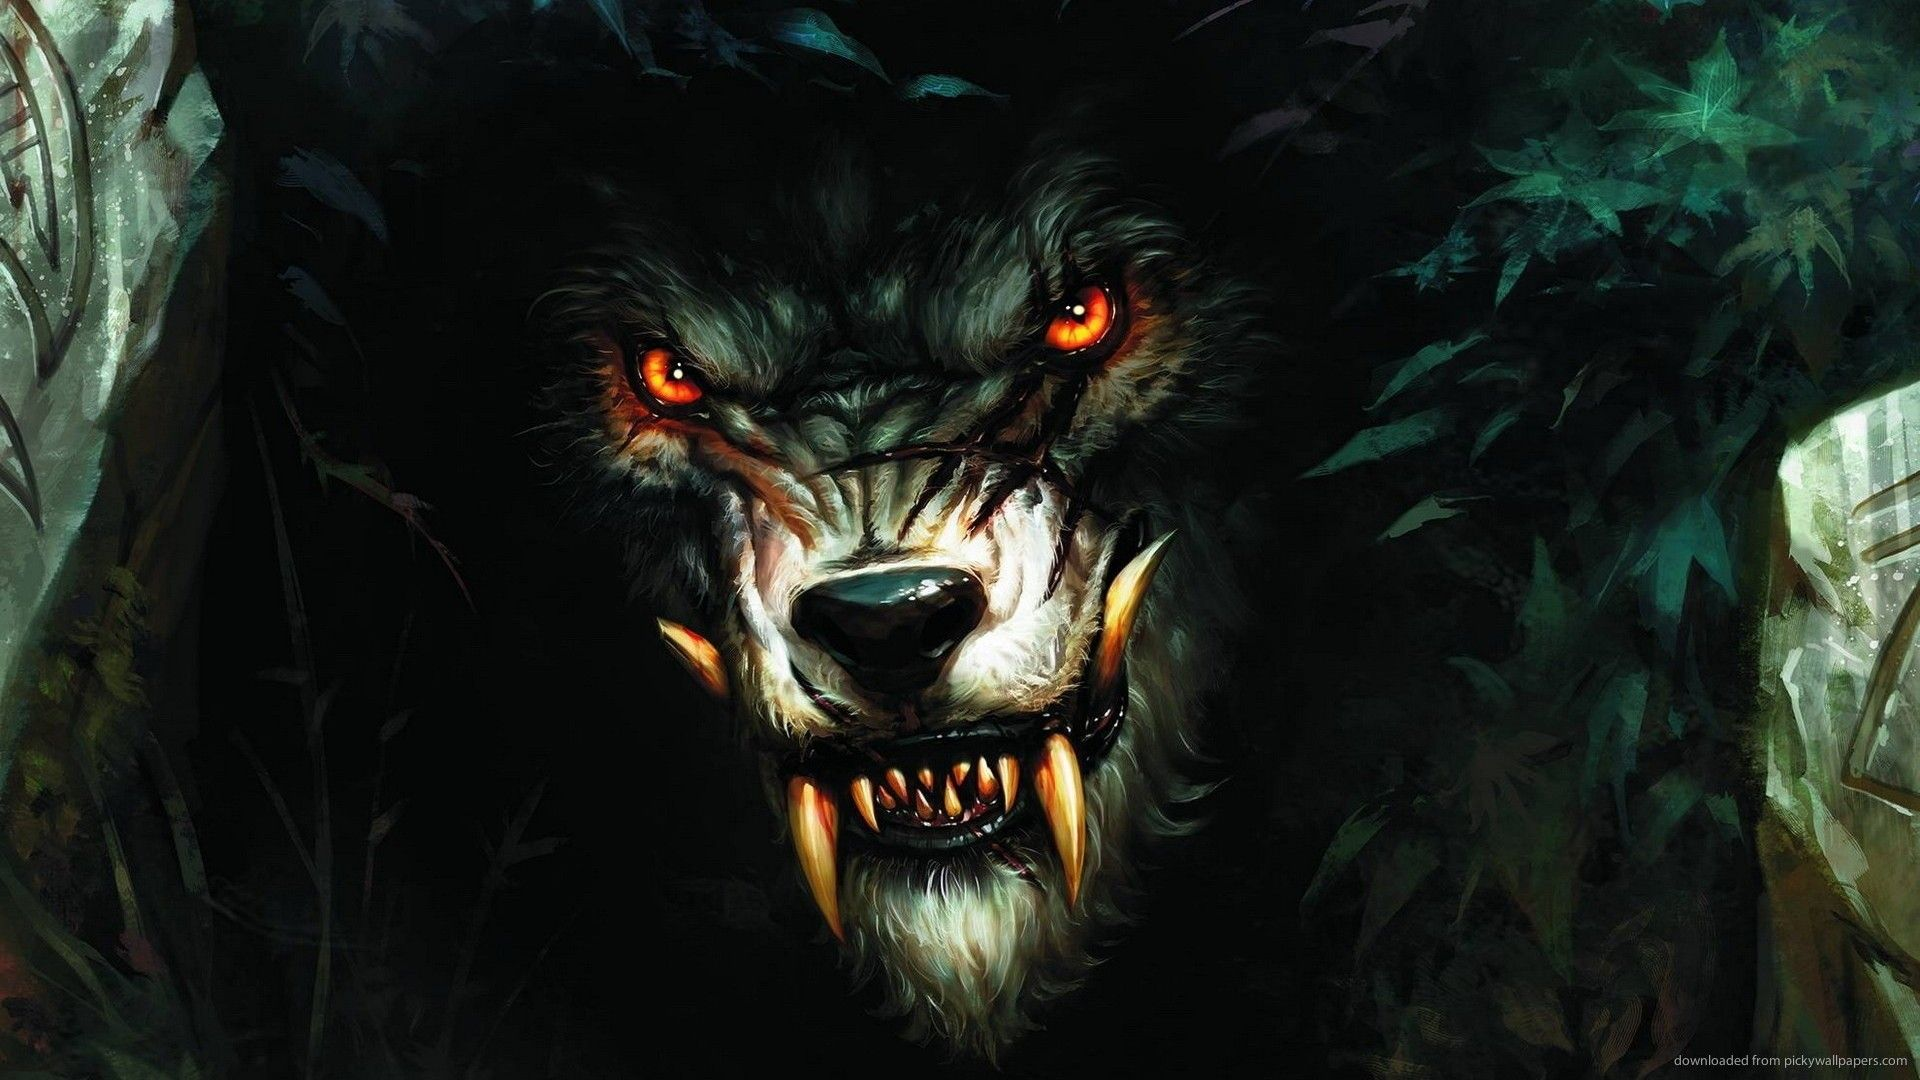 Black Wolf Wallpaper - Android Apps on Google Play